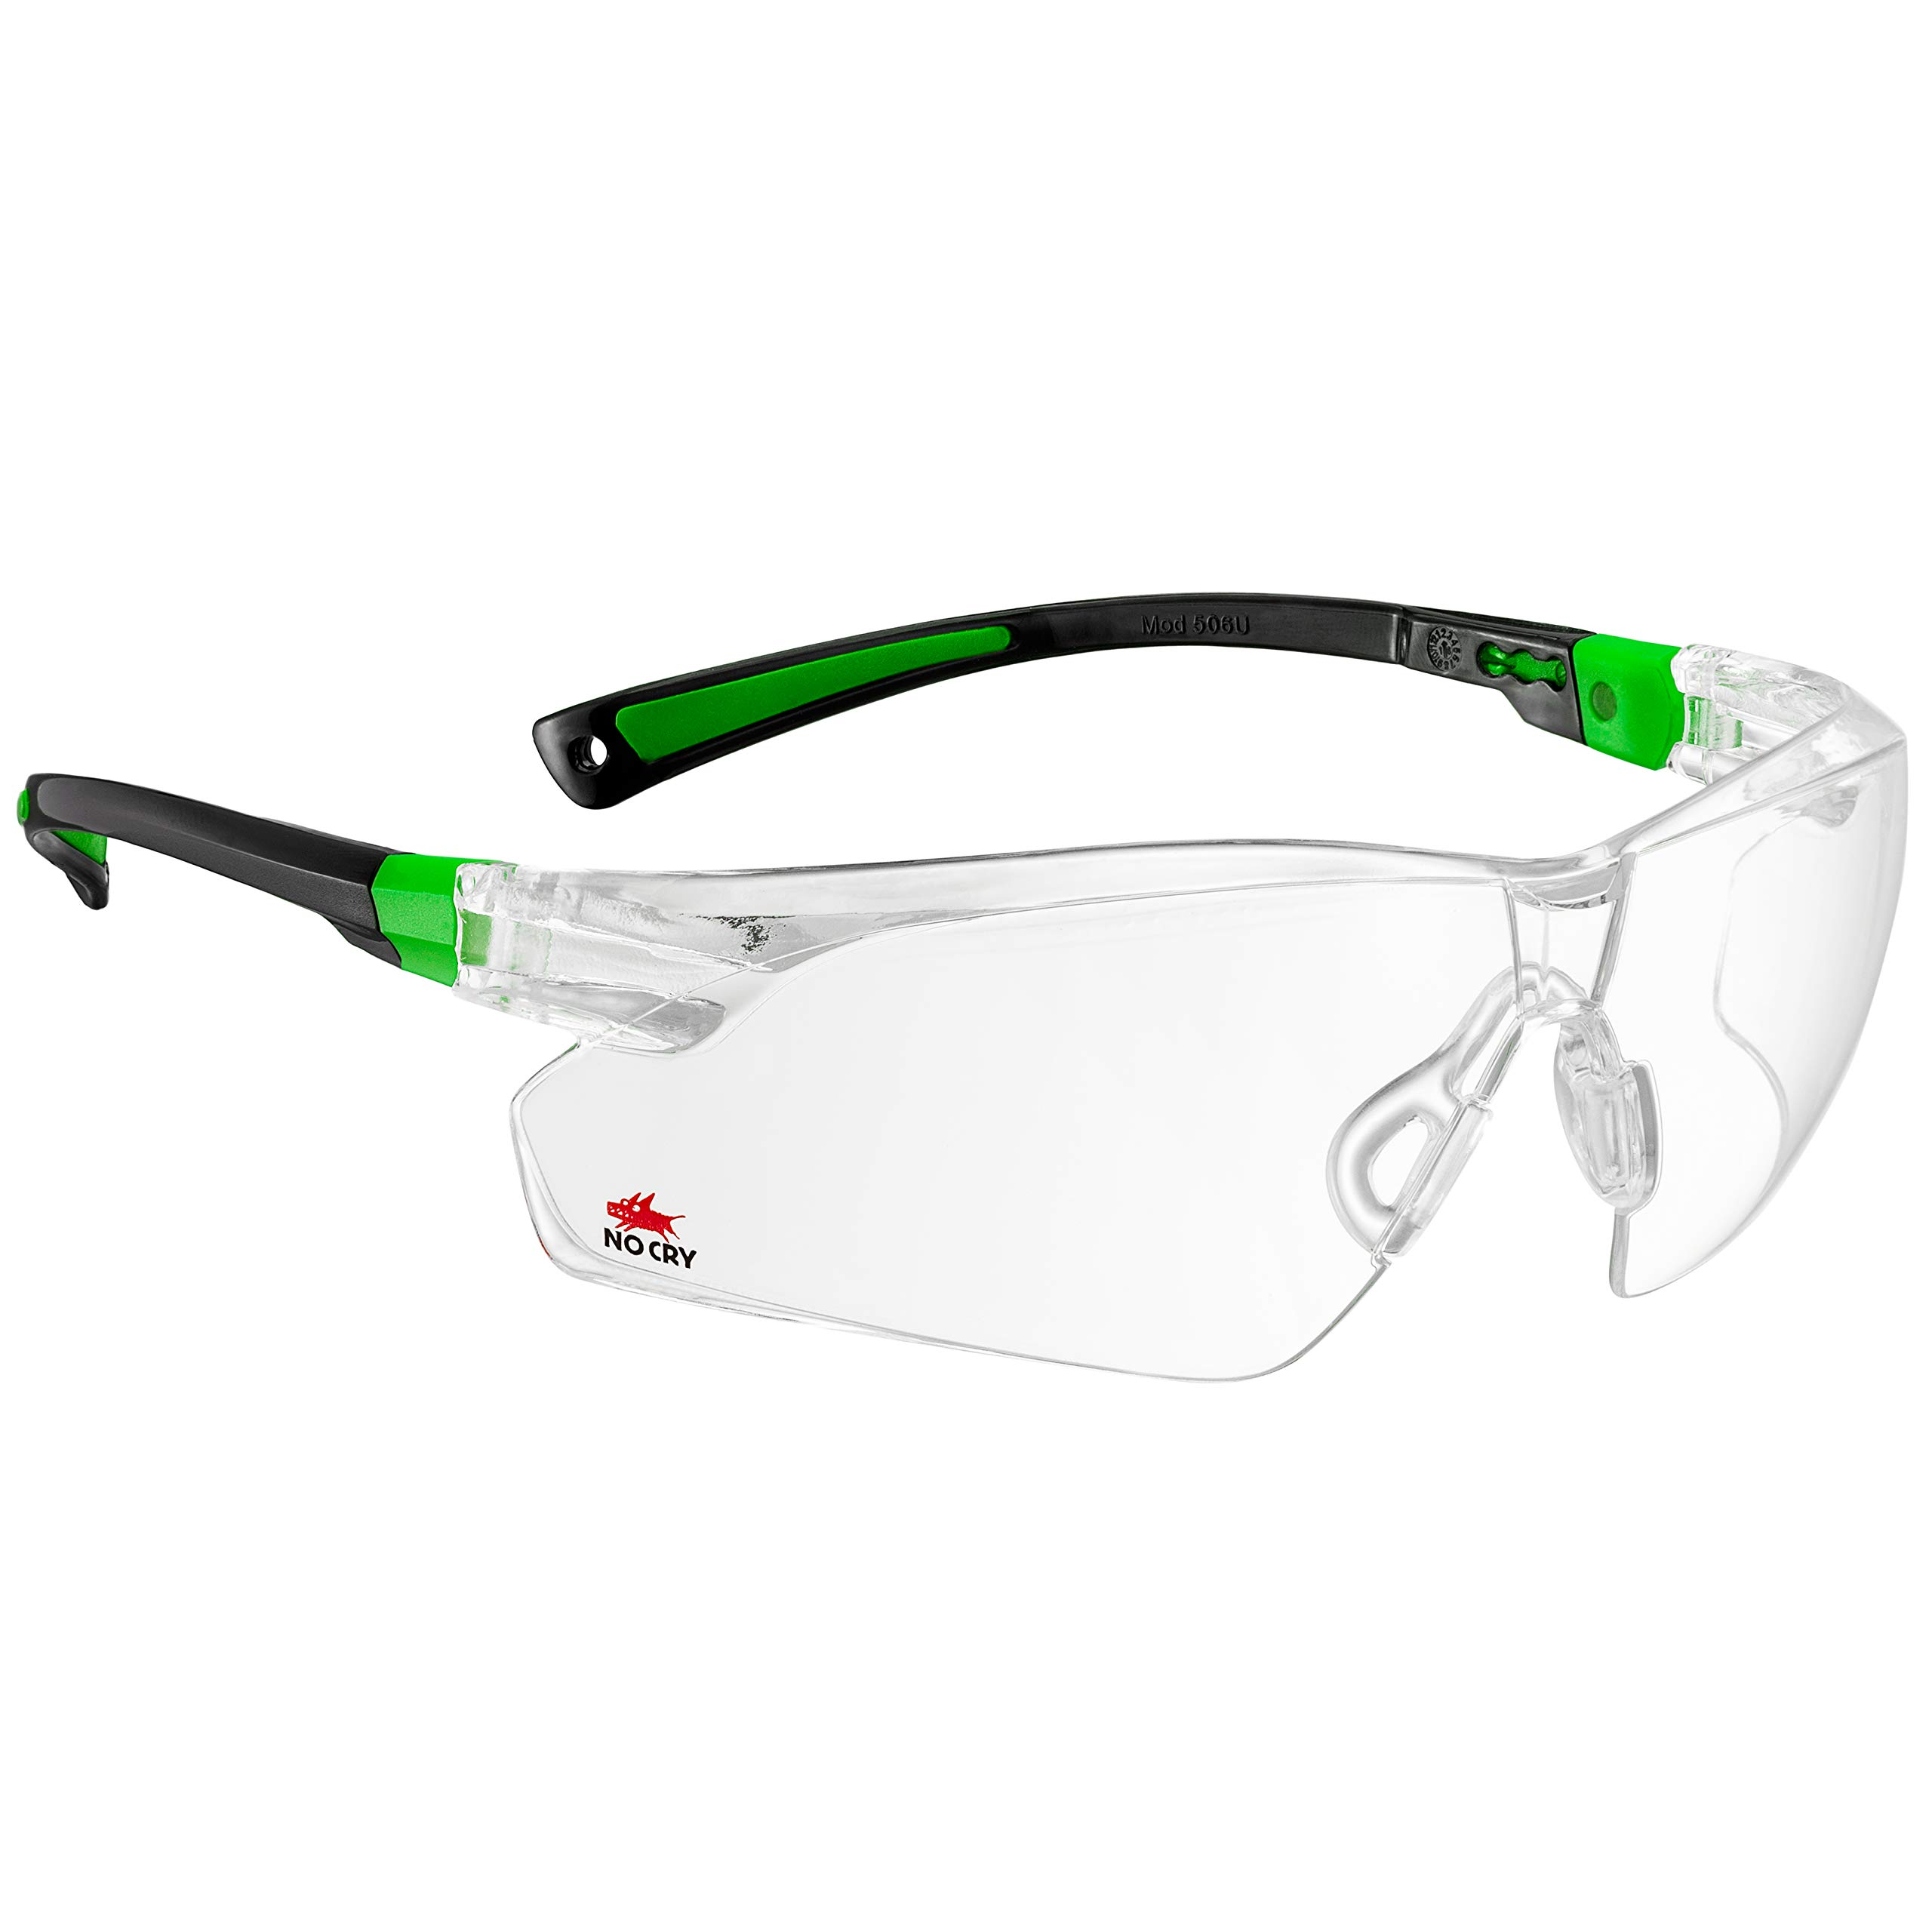 NoCry Safety Glasses with Clear Anti Fog Scratch Resistant Wrap-Around Lenses and No-Slip Grips, UV Protection. Adjustable, Black & Green Frames by NoCry